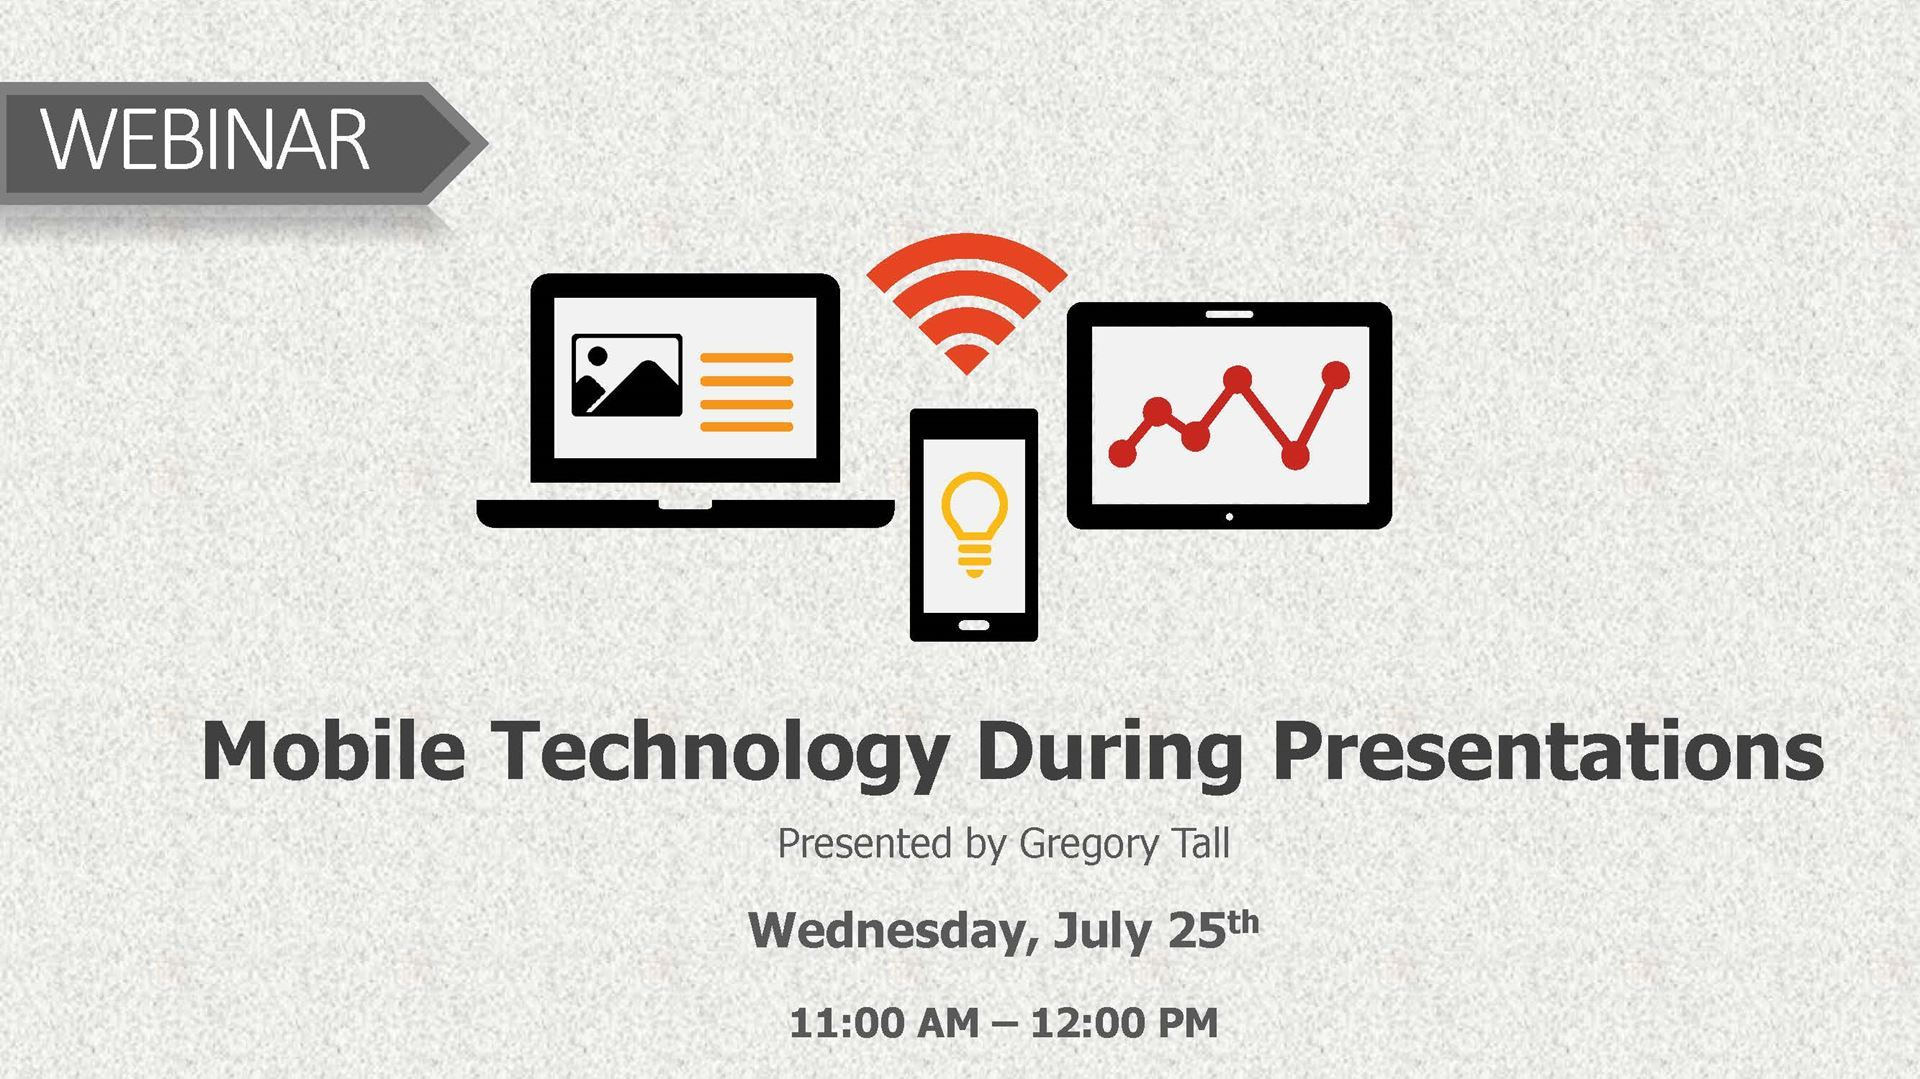 Atd Dallas Chapter Webinar Mobile Technology During Presentations